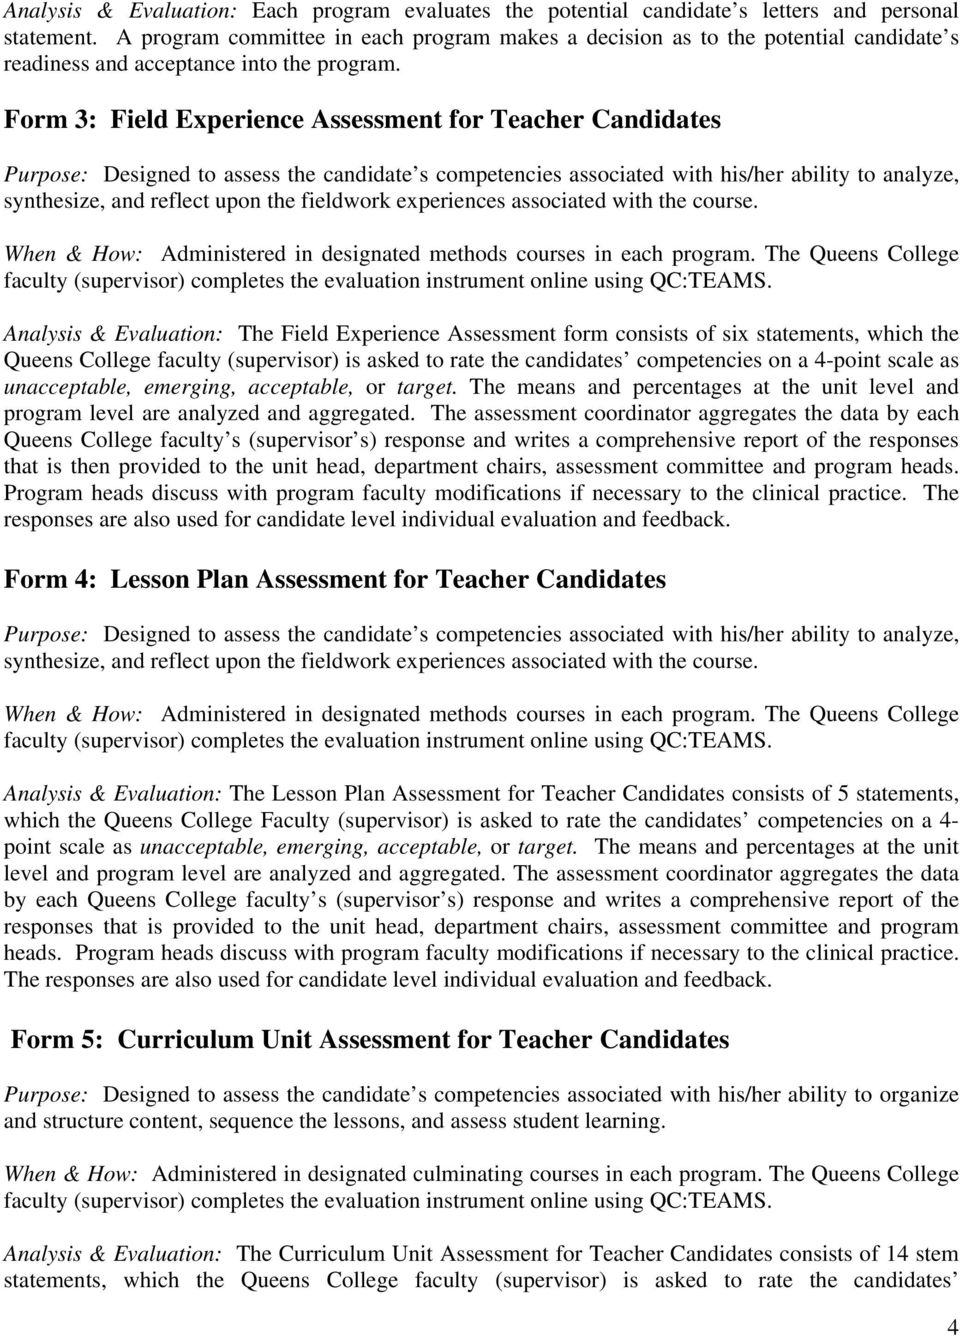 Form 3: Field Experience Assessment for Teacher Candidates Purpose: Designed to assess the candidate s competencies associated with his/her ability to analyze, synthesize, and reflect upon the